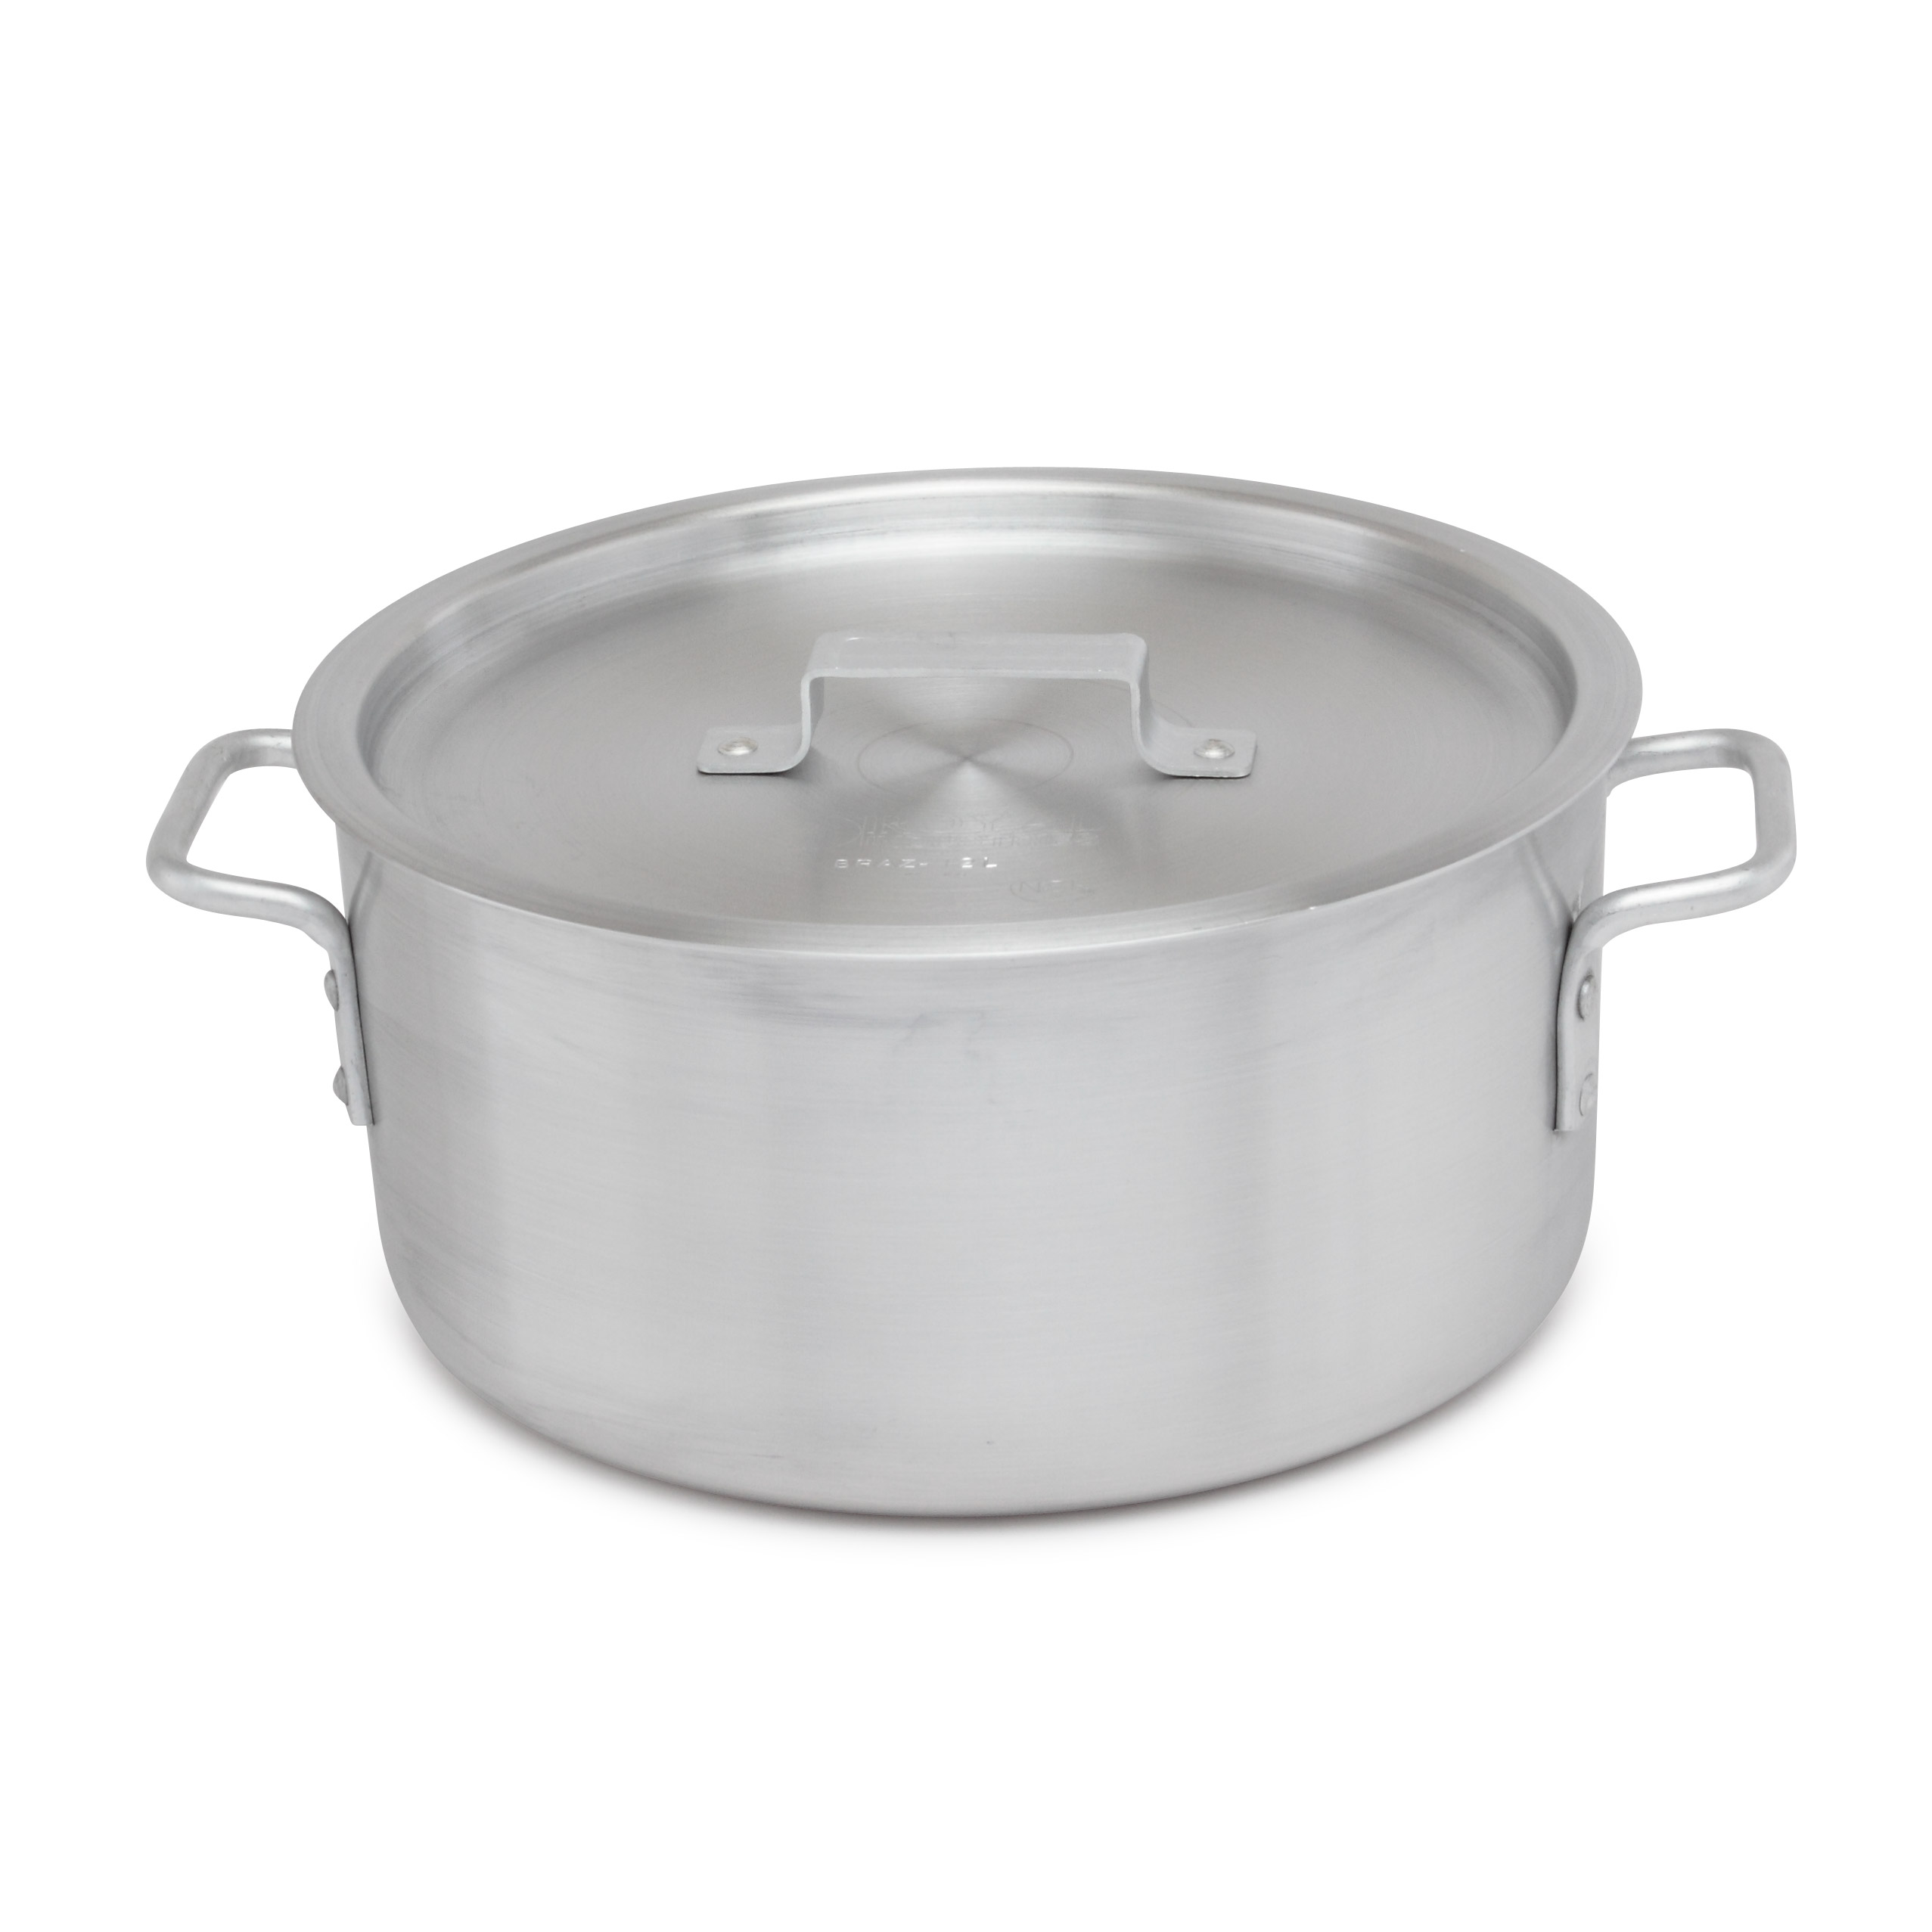 Royal Industries ROY BRAZ SW 12 brazier pan